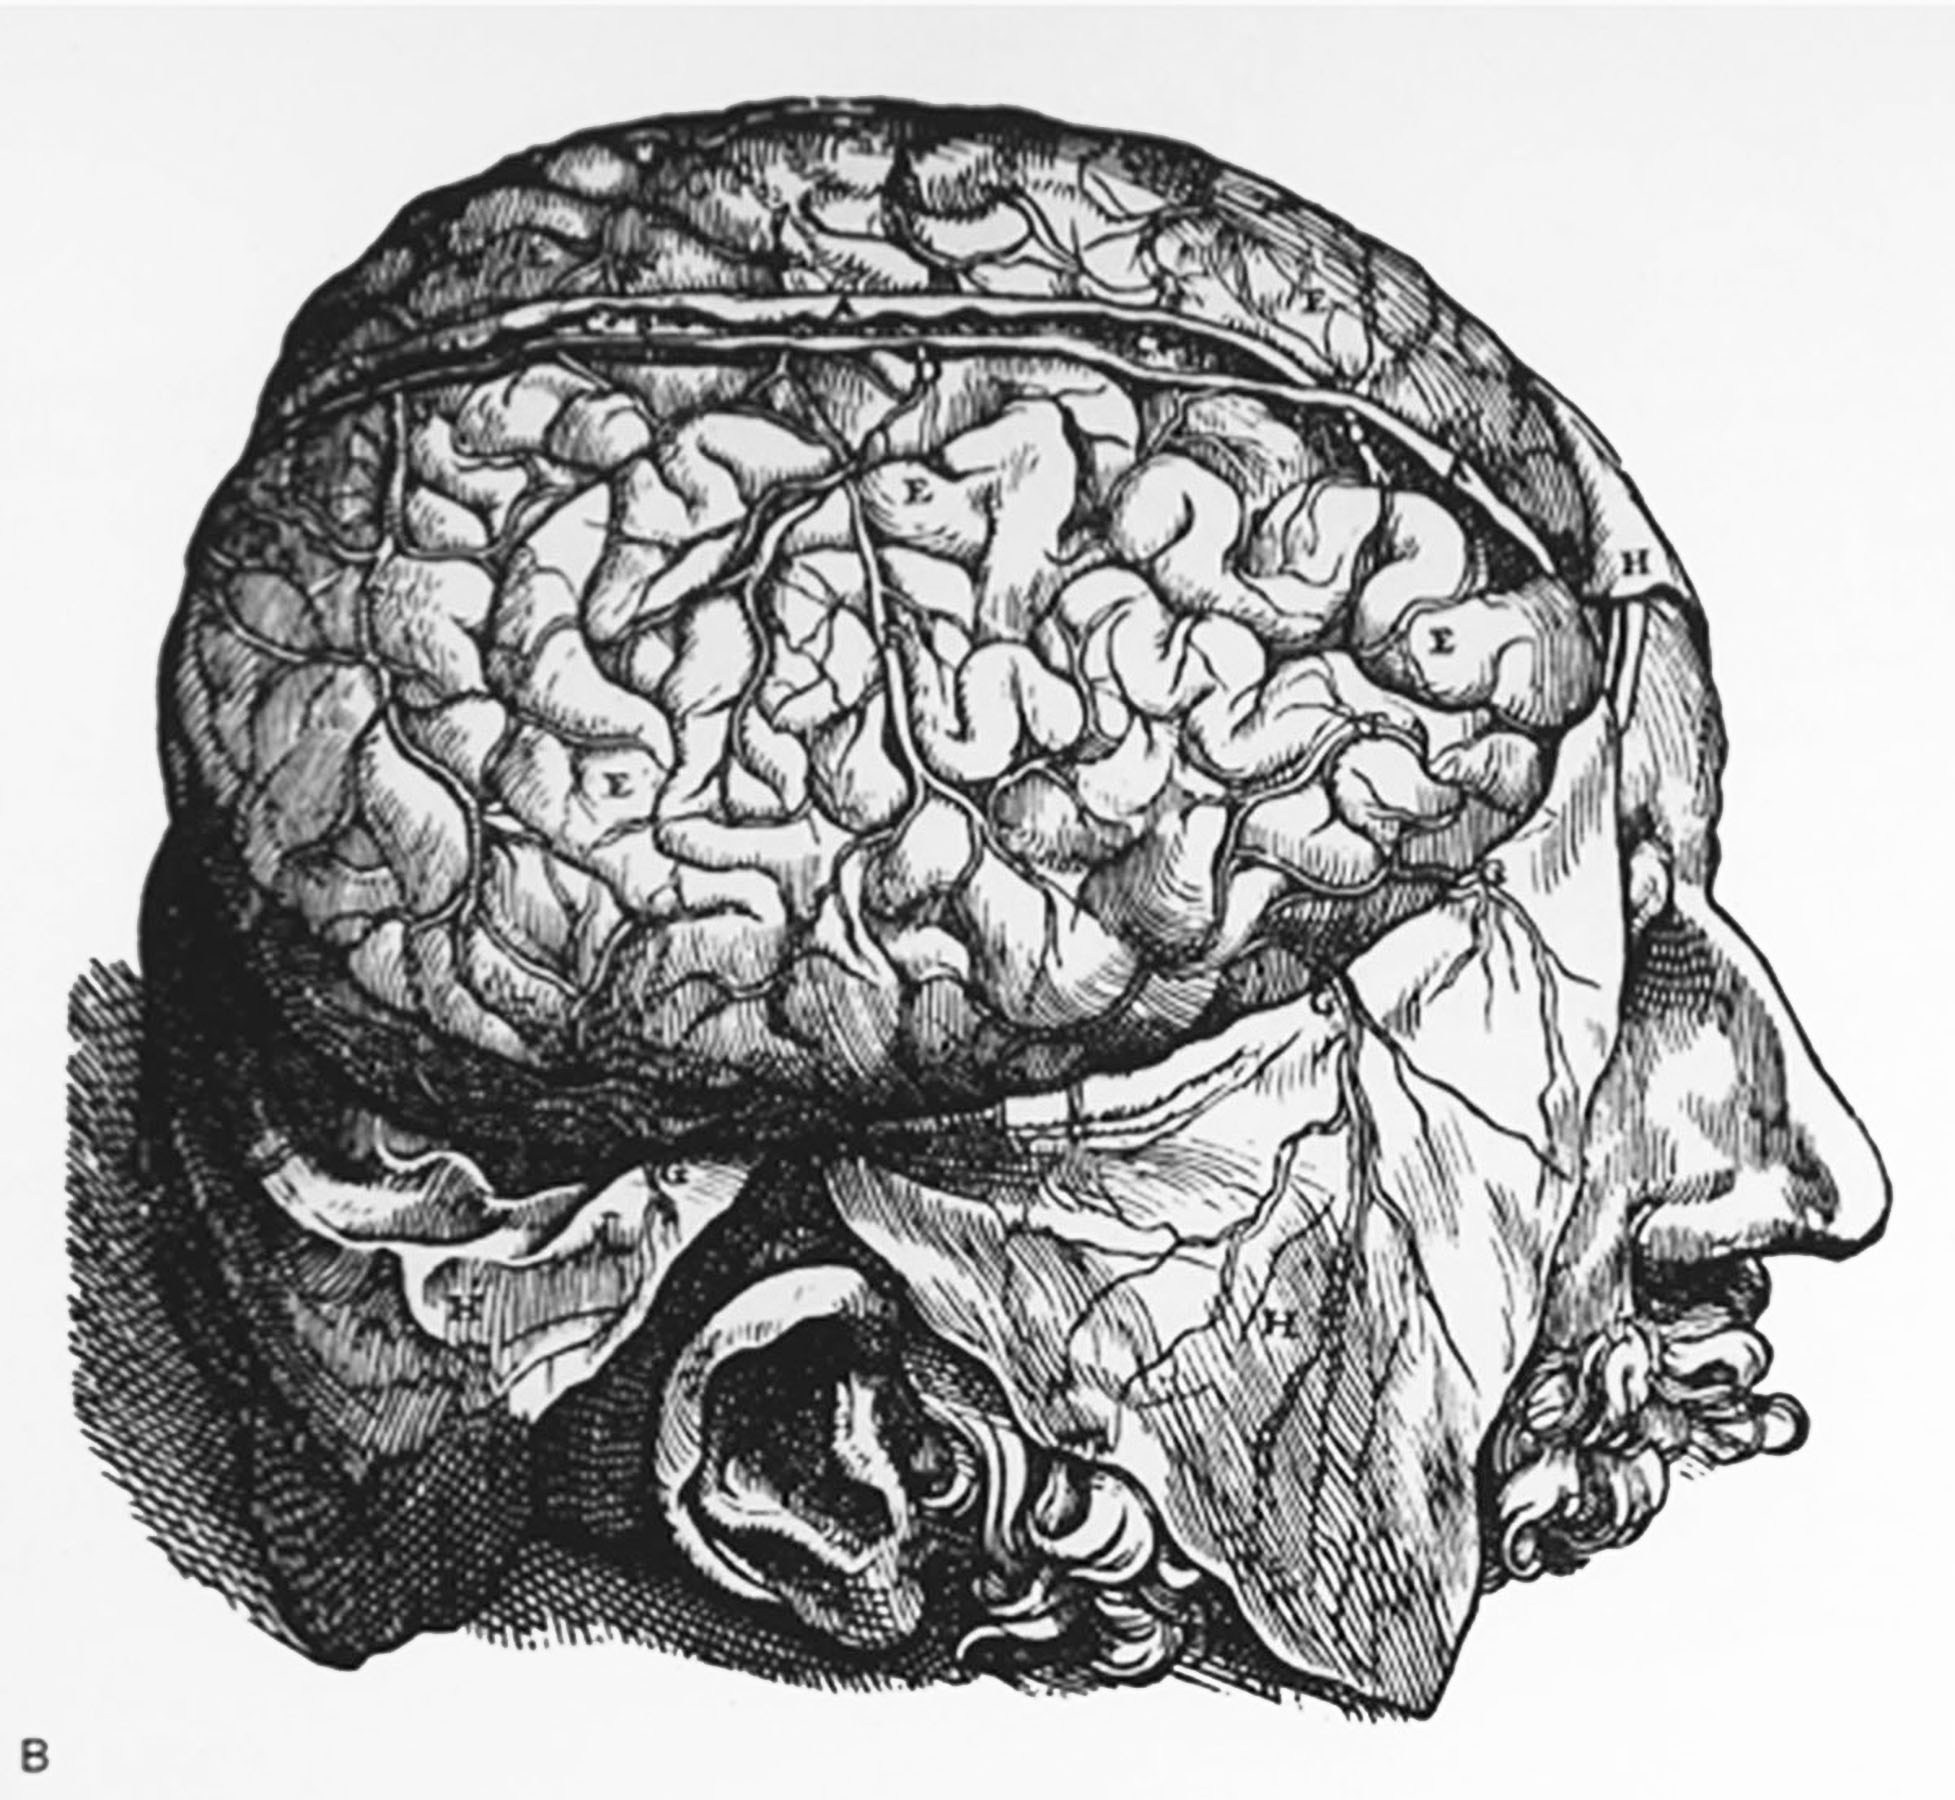 Drawn brains dissection Human dissected brain of Brain